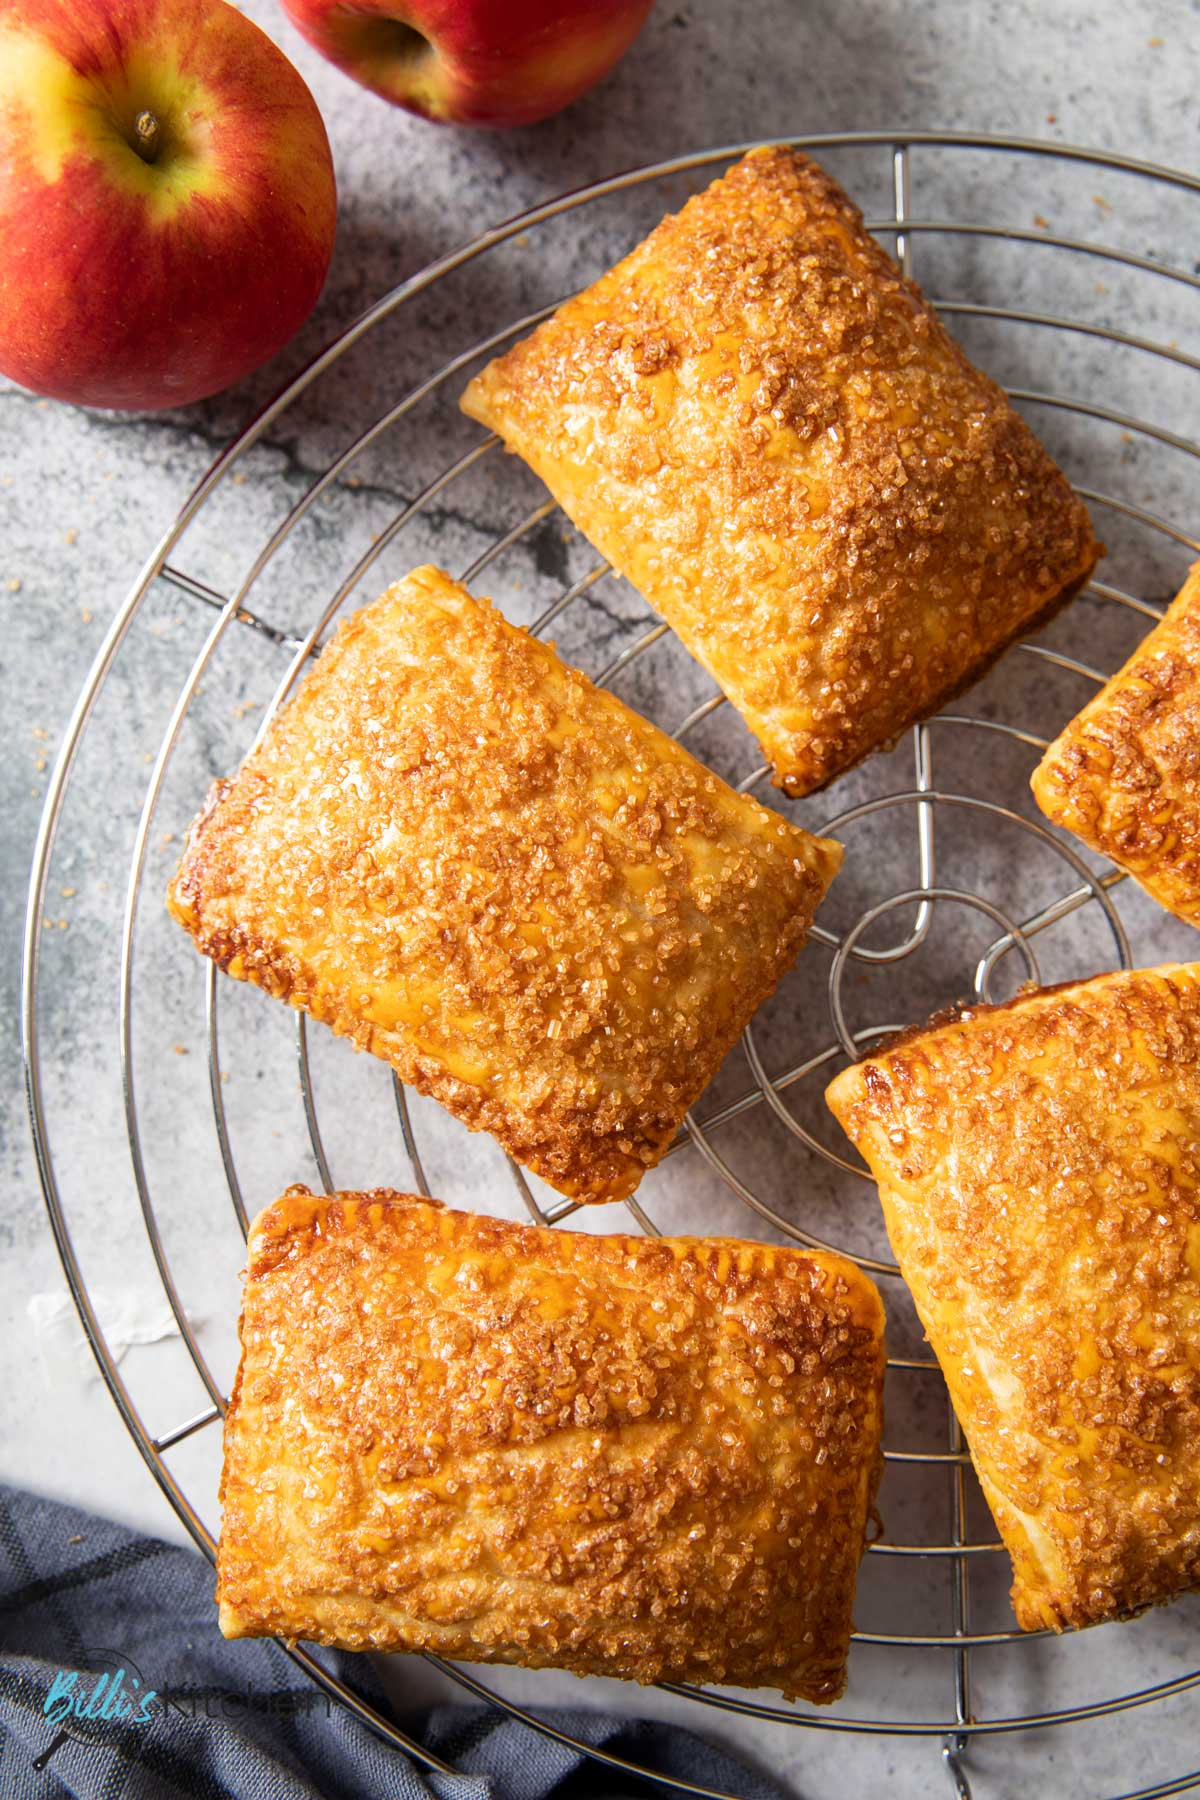 An overhead shot of golden brown apple turnovers, generously sprinkled with brown sugar; on a cooling rack.